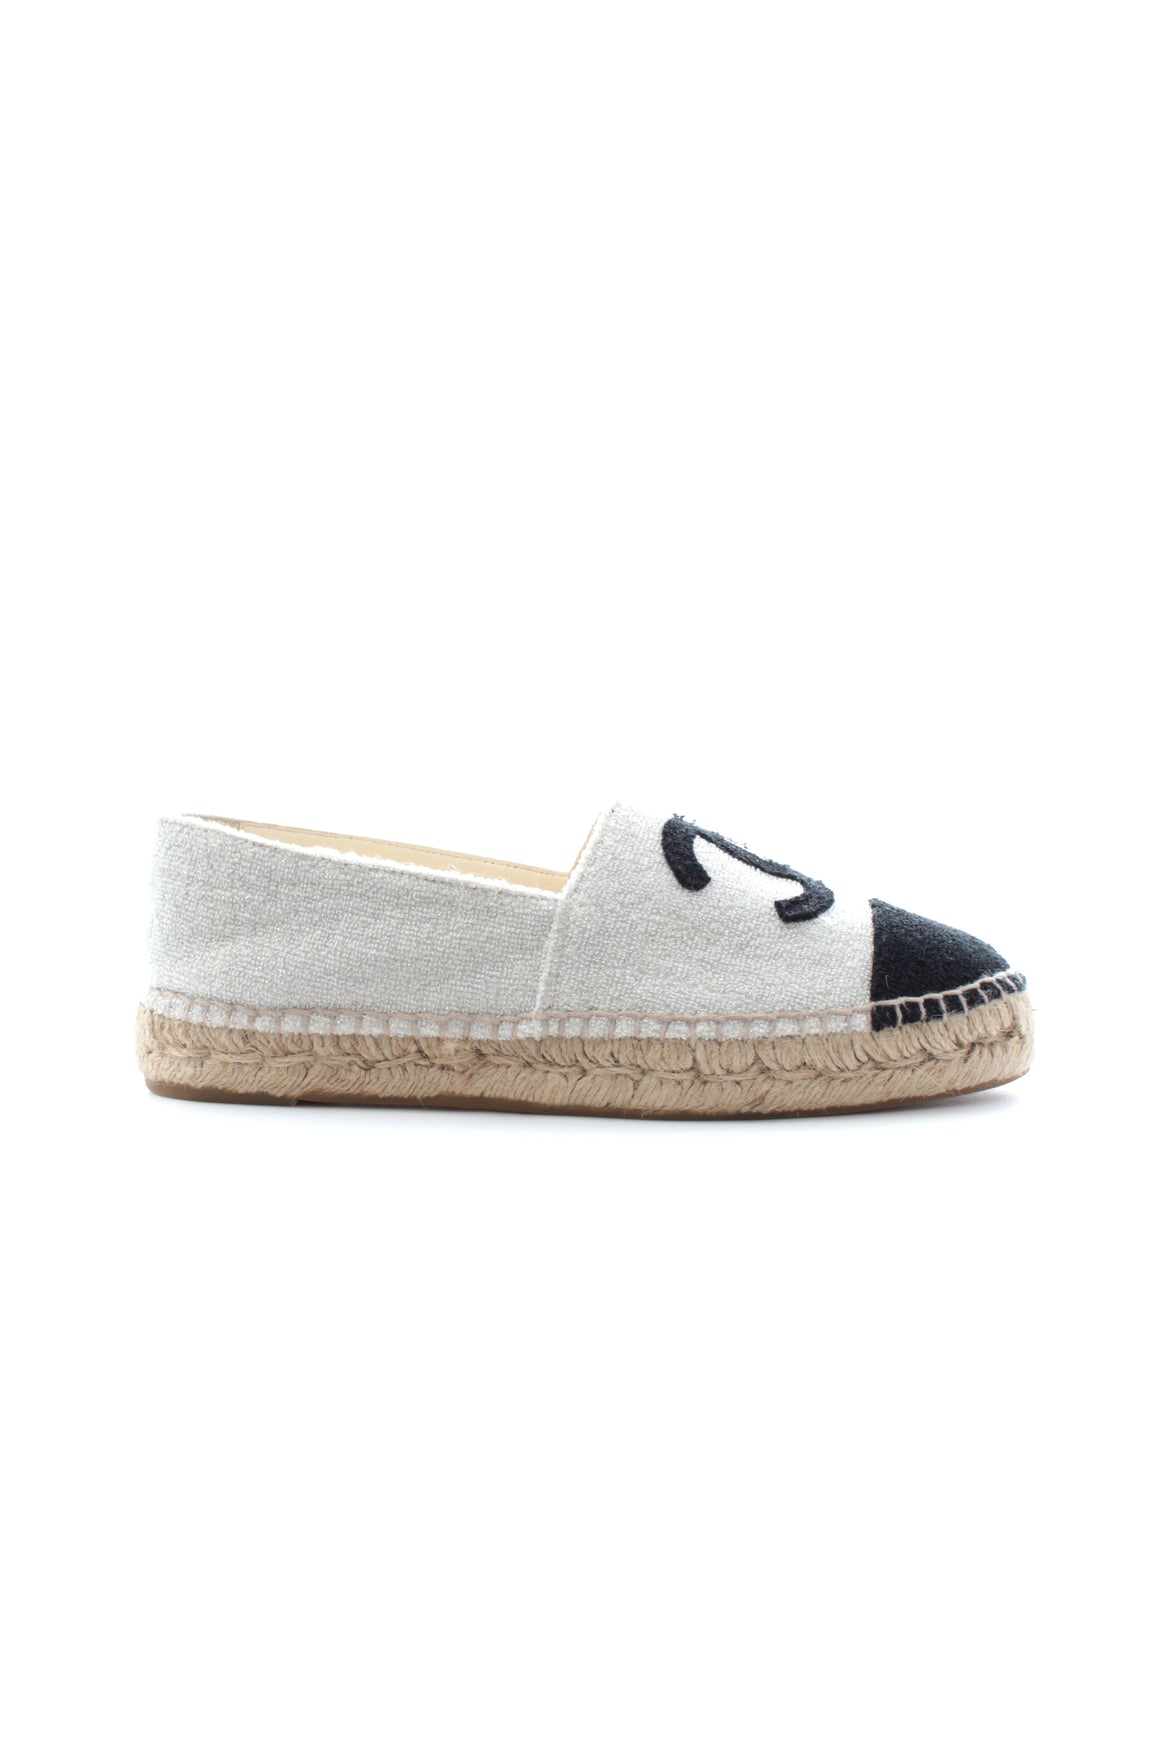 Chanel Two-Tone Glitter Terry-Cloth Espadrilles